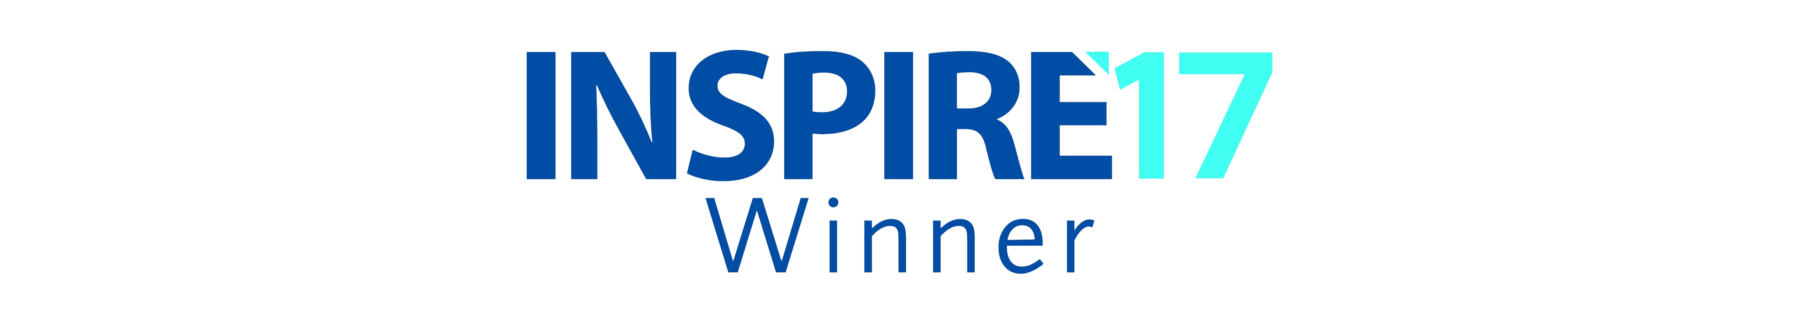 INSPIRE AWARDS WINNER 2017 | Connective Chiropractic | Healthy Workplace| Chiropractic Clinic | Chiropractor near me | What is Chiropractic